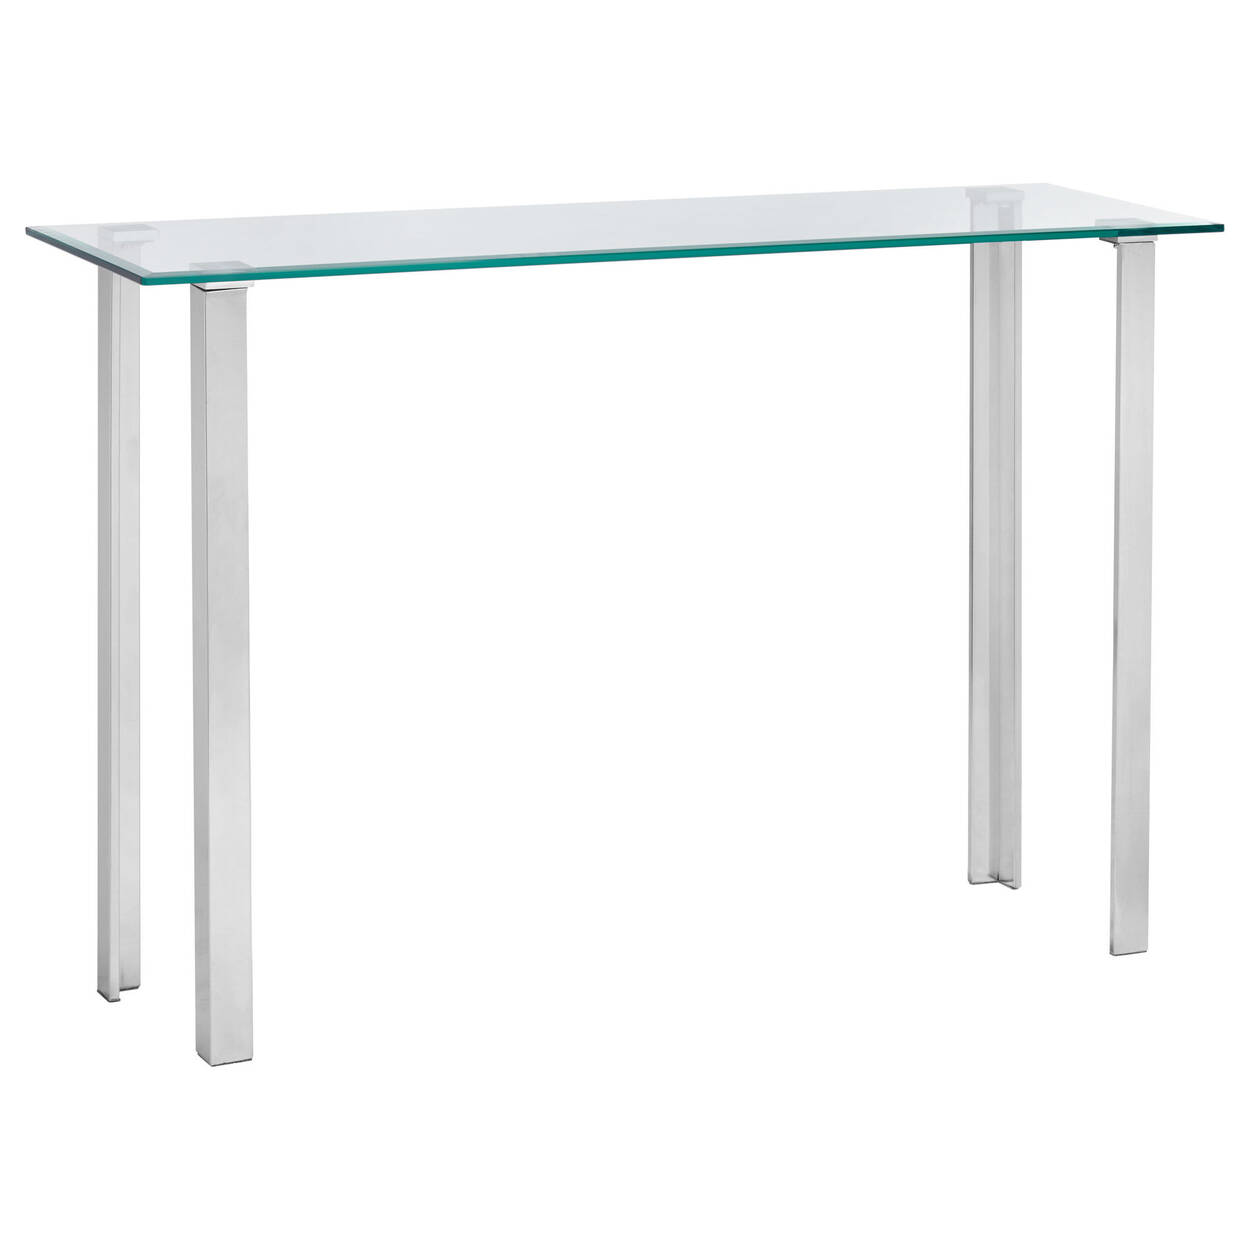 for london table tables modern glass furniture hire